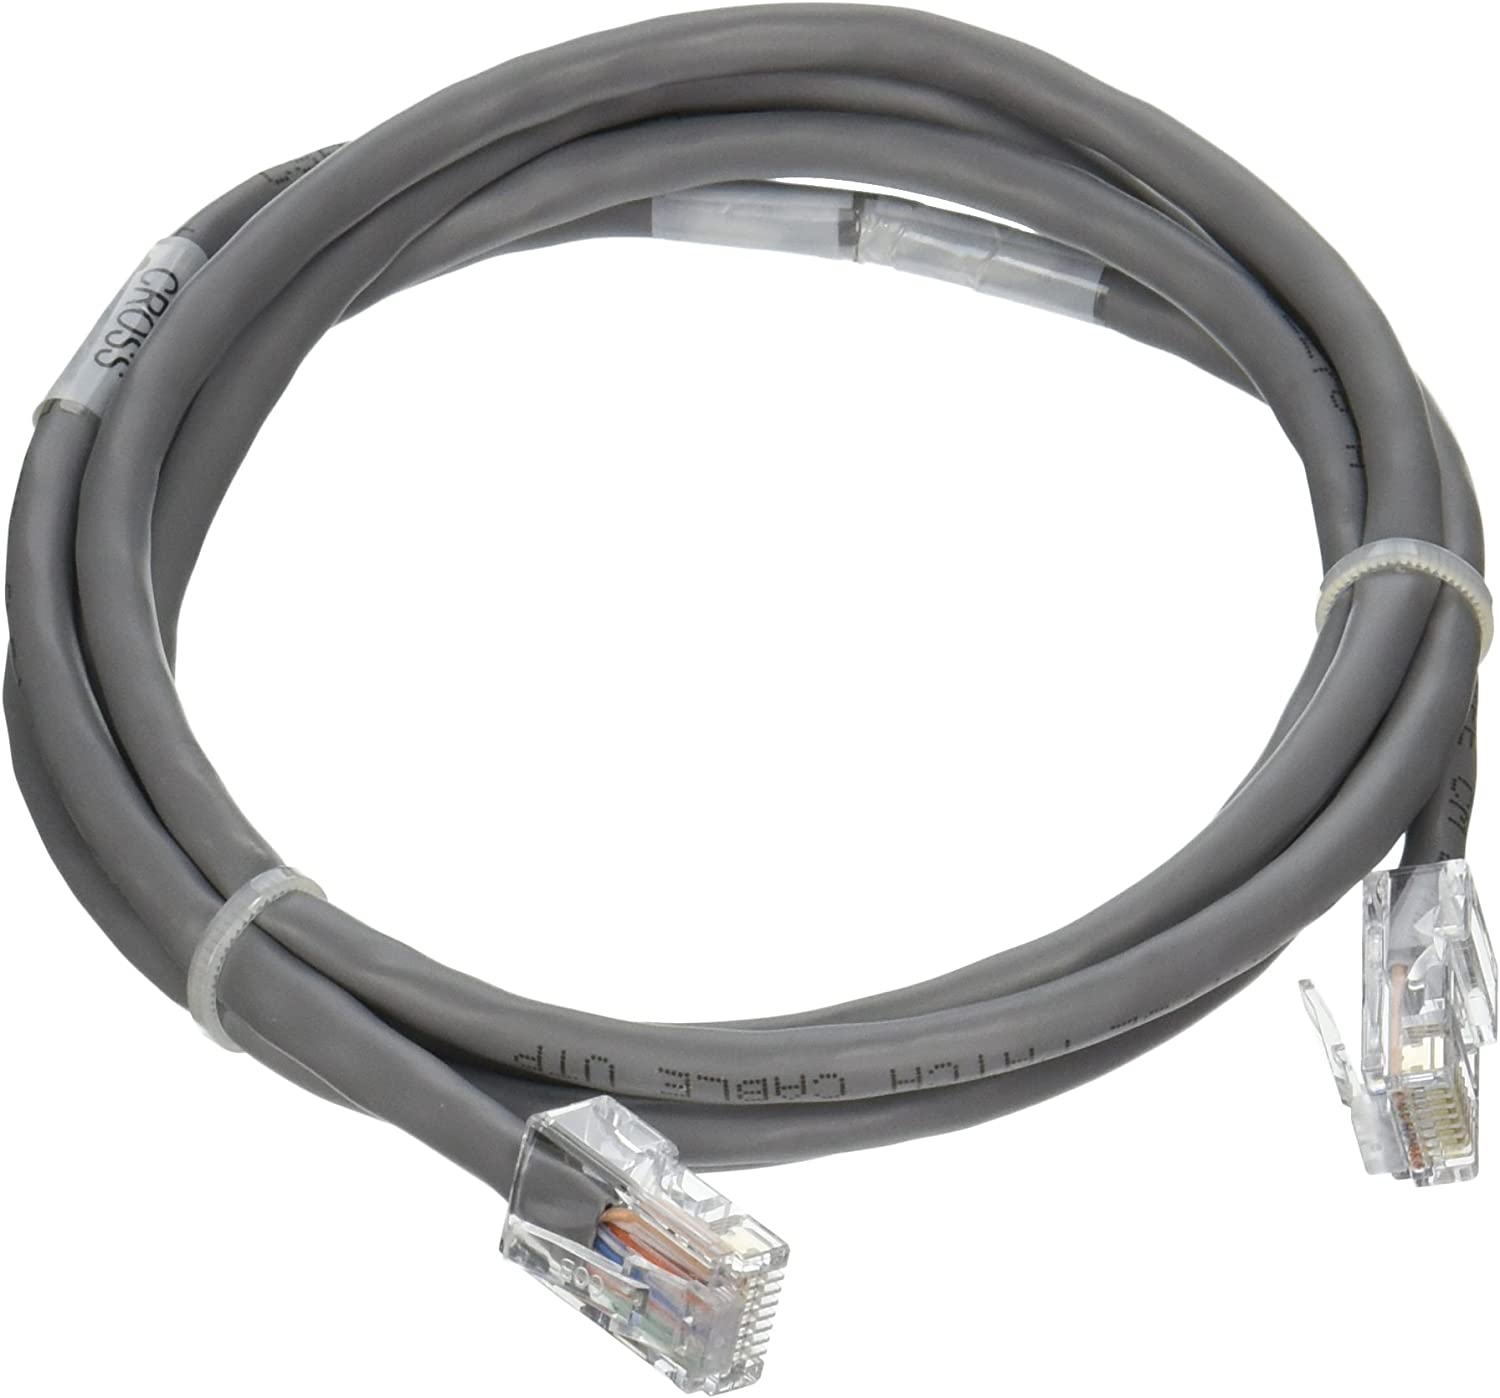 Green Non-Booted Unshielded Network Patch Cable C2G 24507 Cat5e Crossover Cable 7 Feet, 2.13 Meters